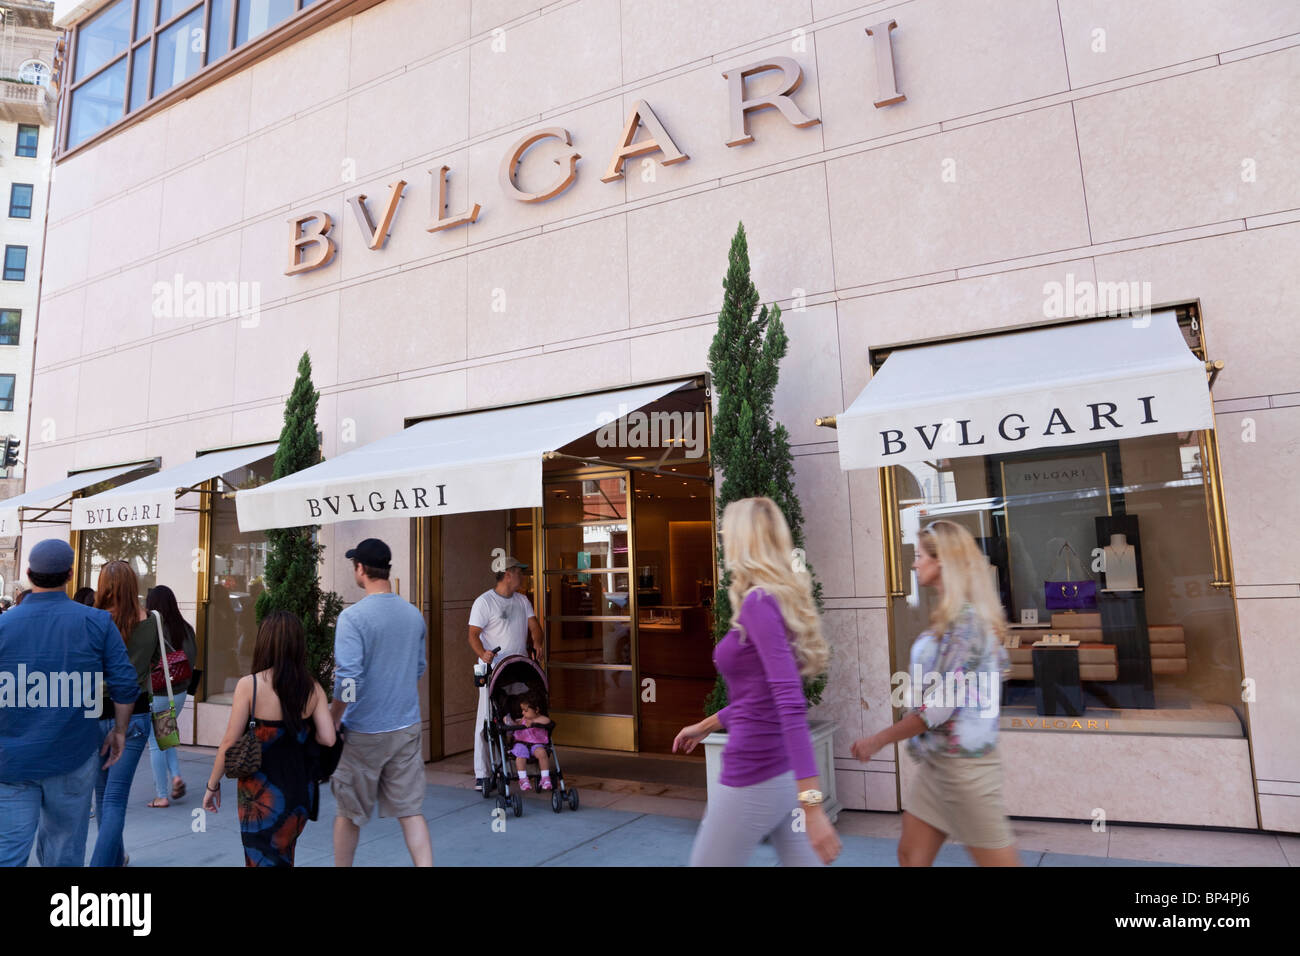 Bulgari Store auf dem Rodeo Drive, Los Angeles, Kalifornien, USA Stockbild 46df5c23ffa